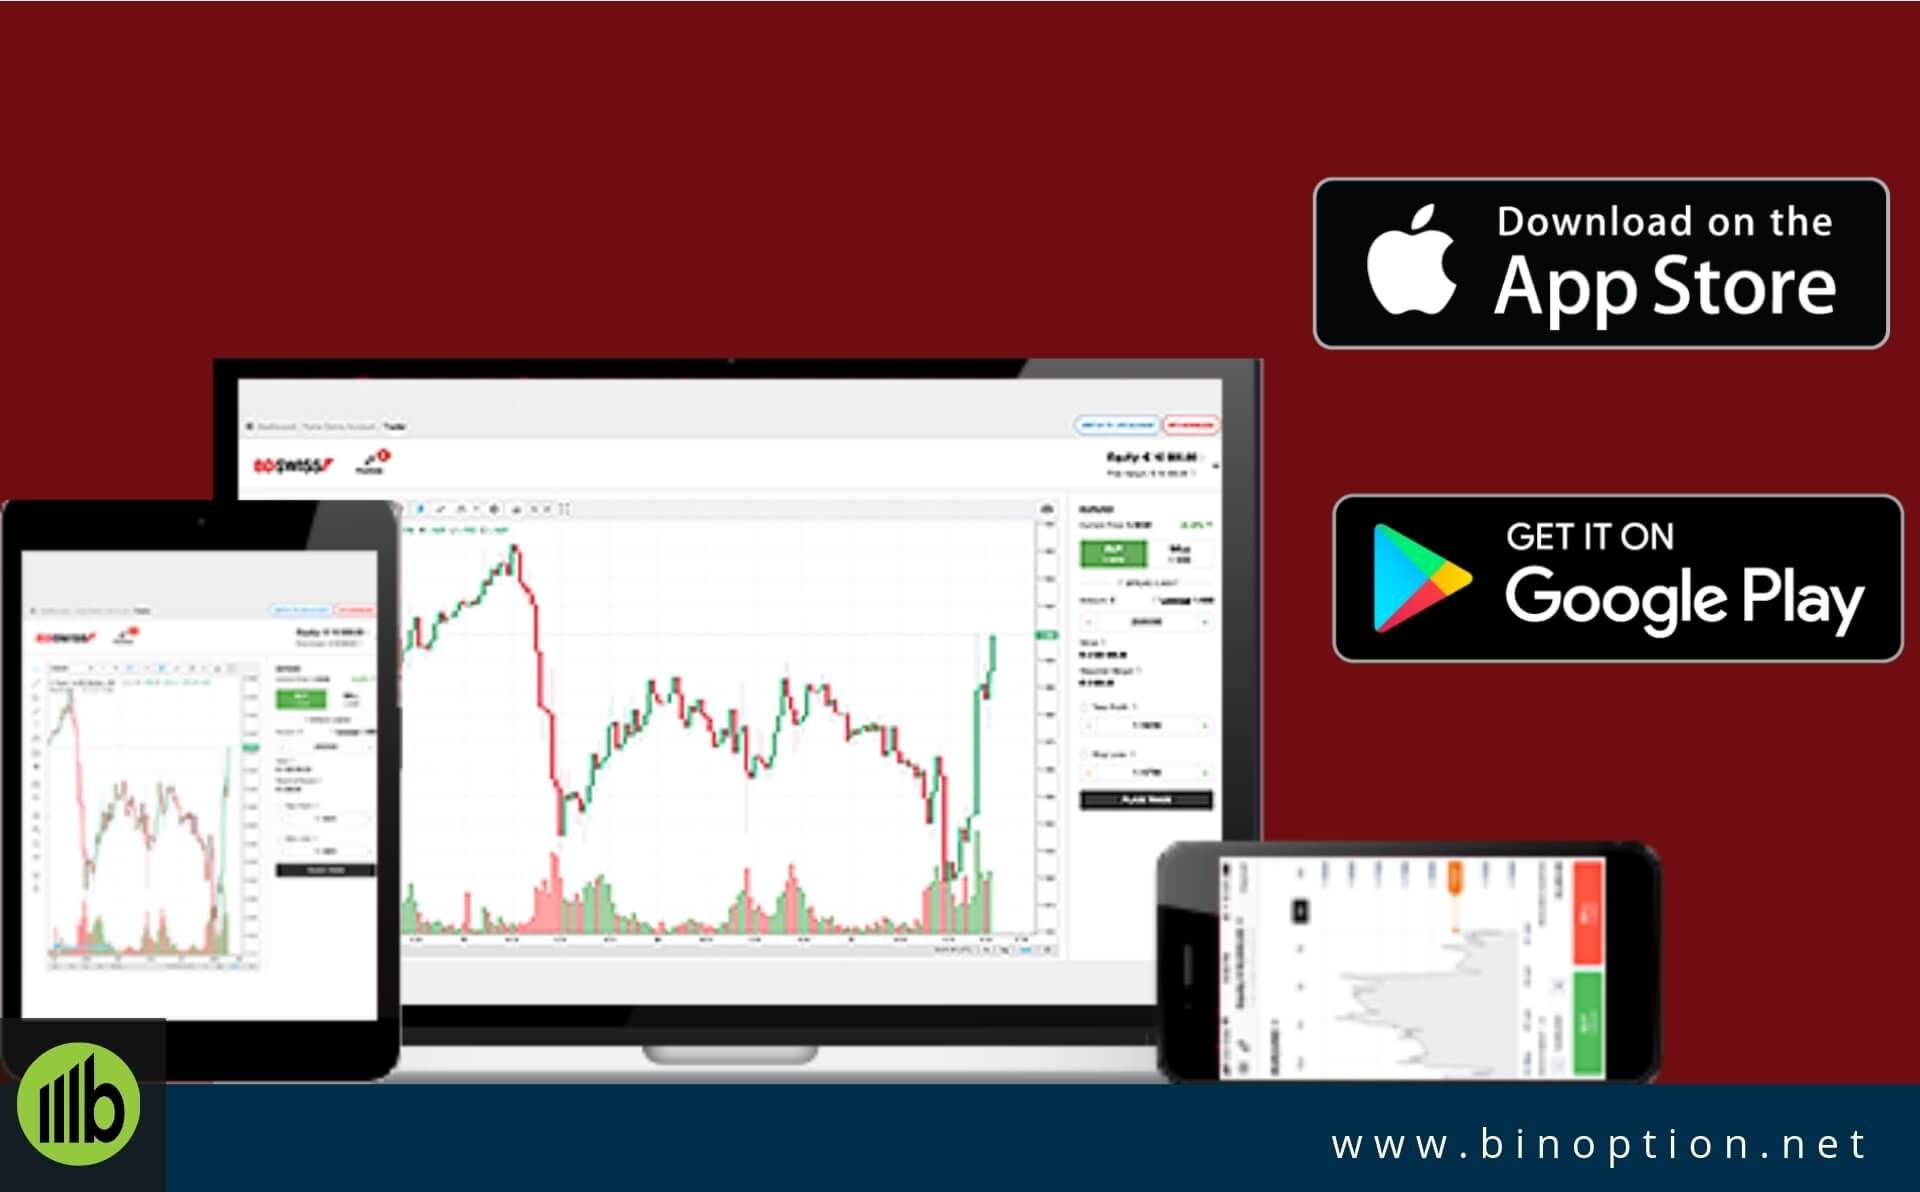 You Can Now Trade Your Favorite Trading Asset With The Help Of The